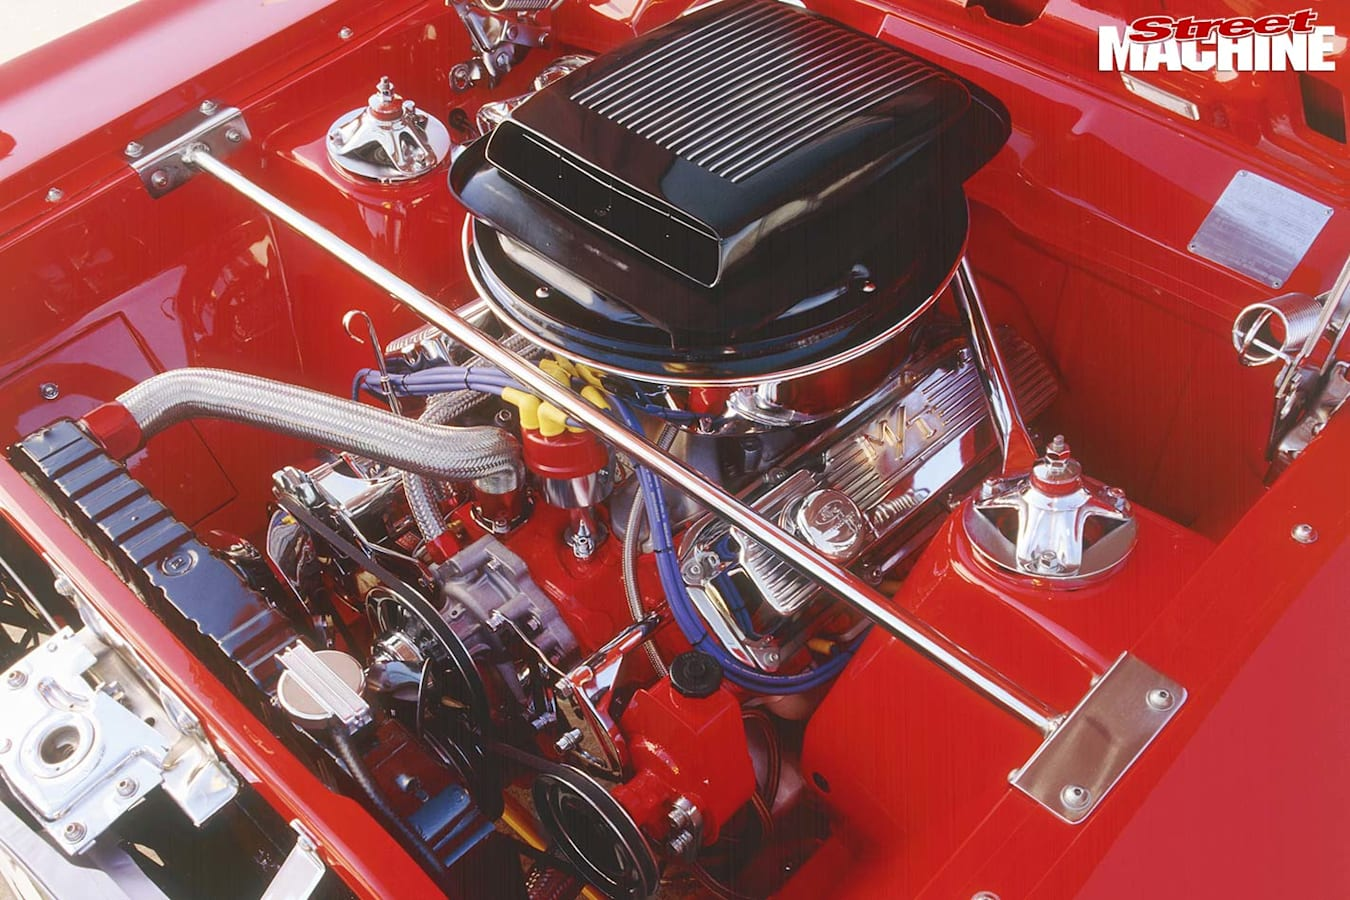 Ford Fairmont engine bay